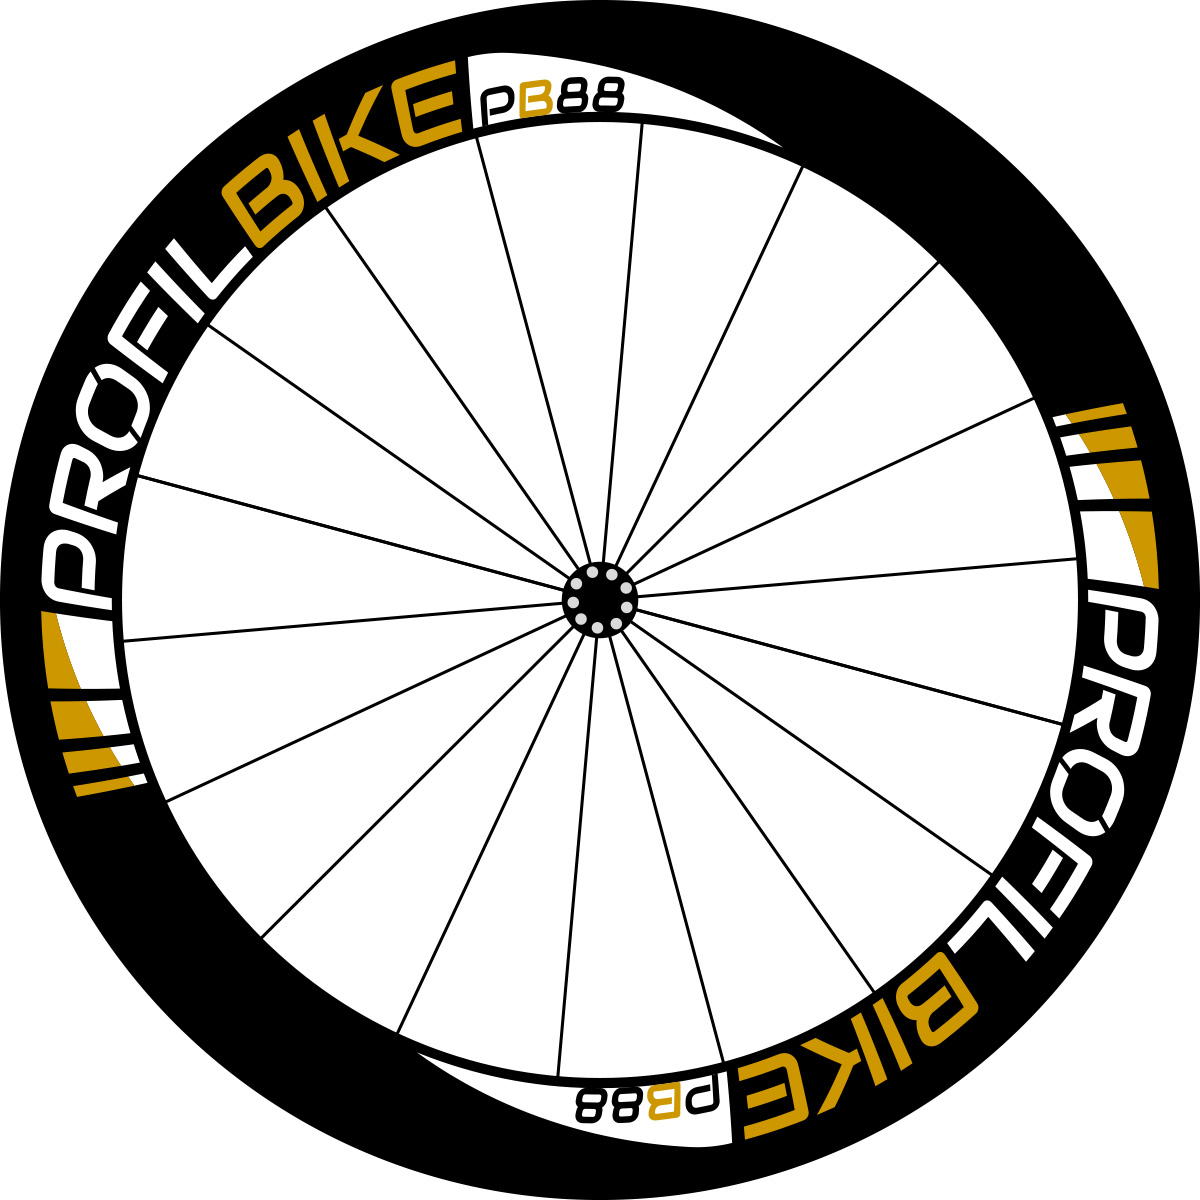 Profilbike PB88 CARBON DISC design or